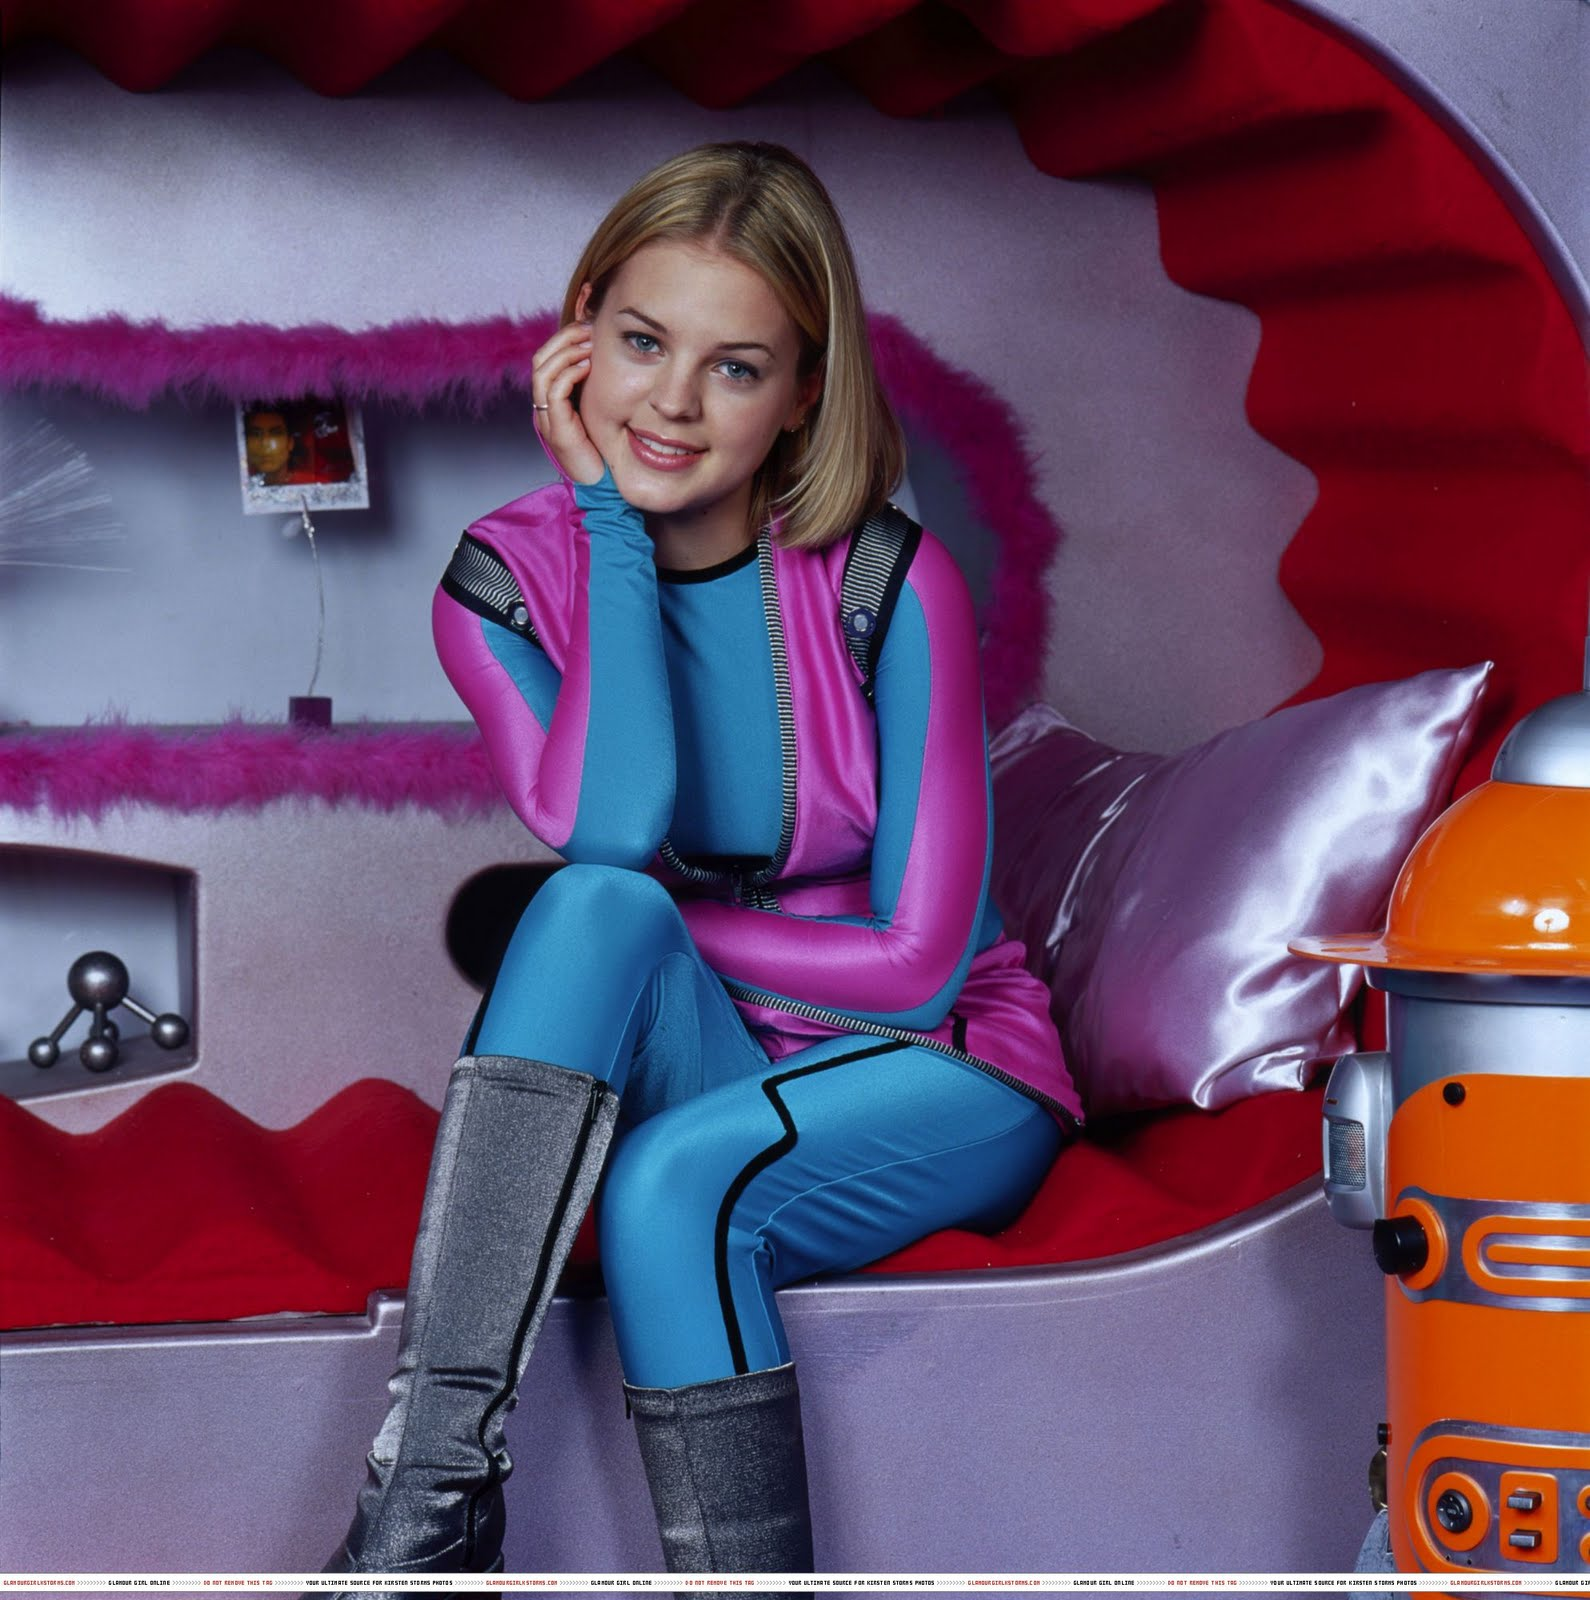 space station zenon girl of the 21st century - photo #10